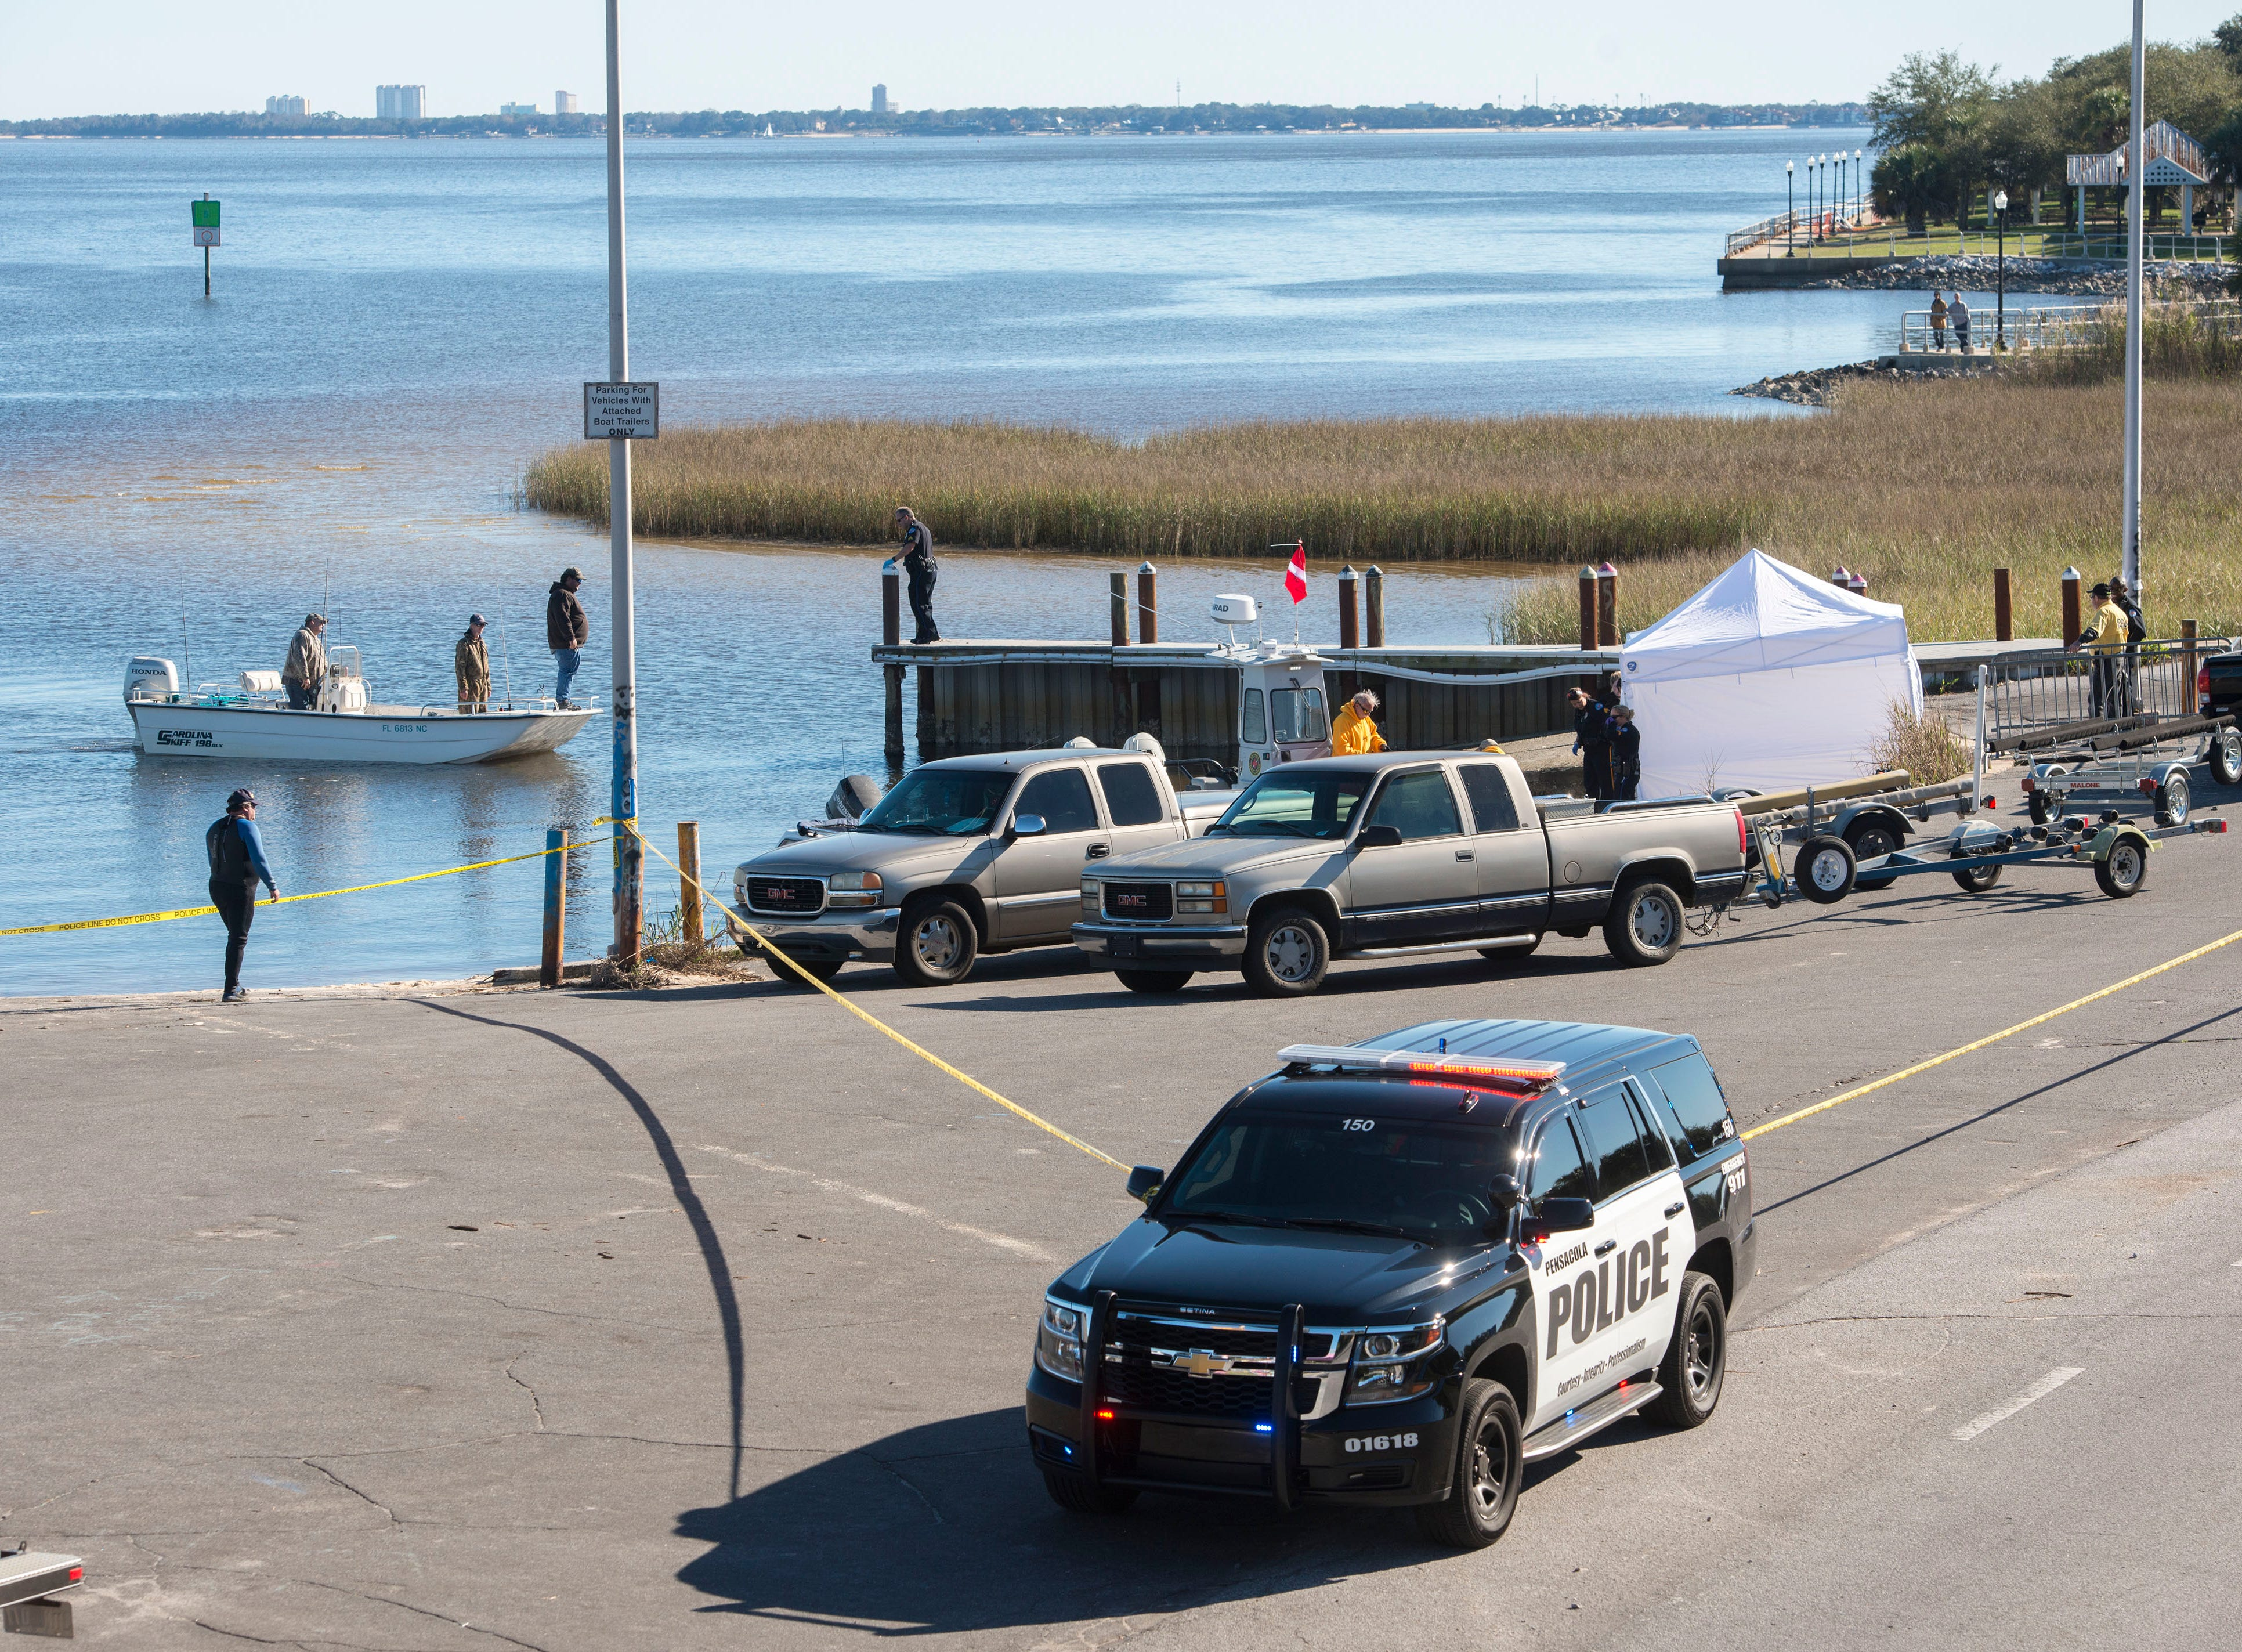 Pensacola police officers investigate a body found in Pensacola Bay Saturday, January 5, 2019 at the 17th Ave. boat ramp.